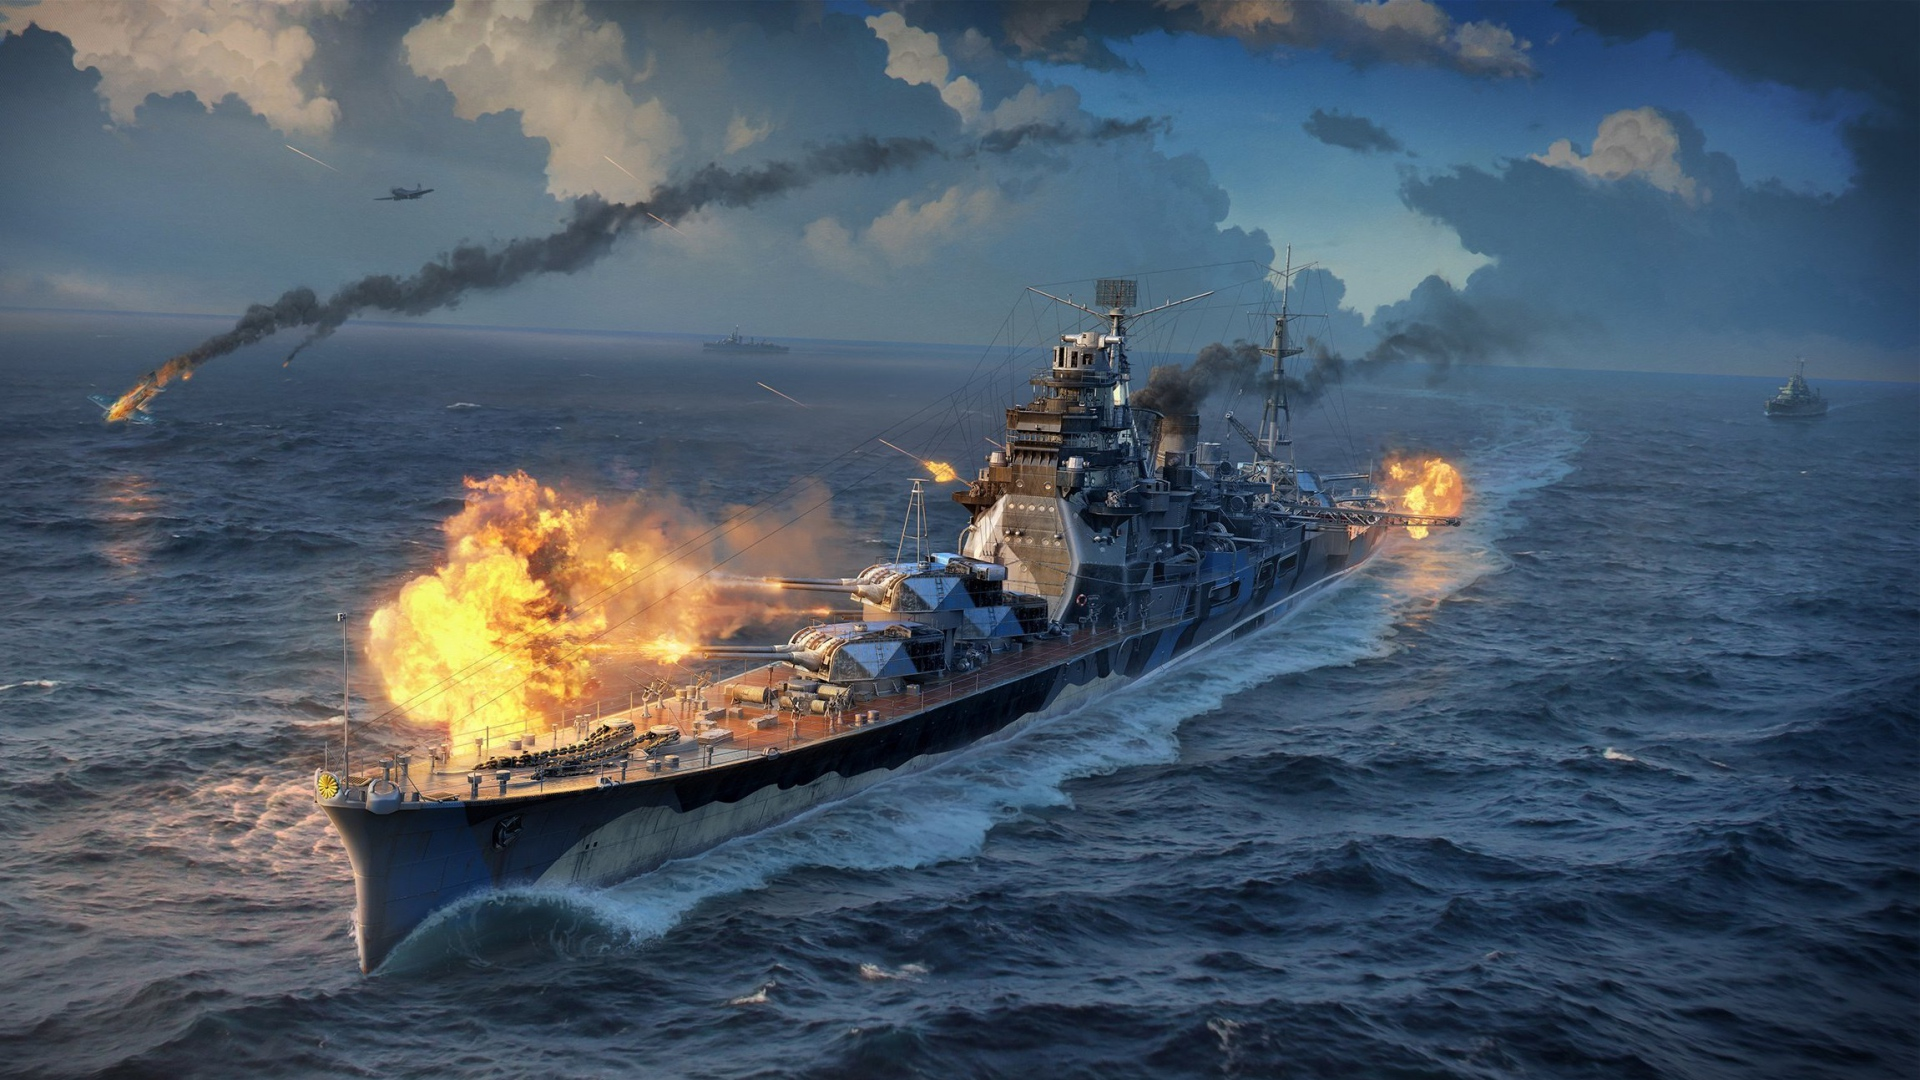 1920x1080-world-of-warships-wargaming-net-wows-wallpaper-wp380934